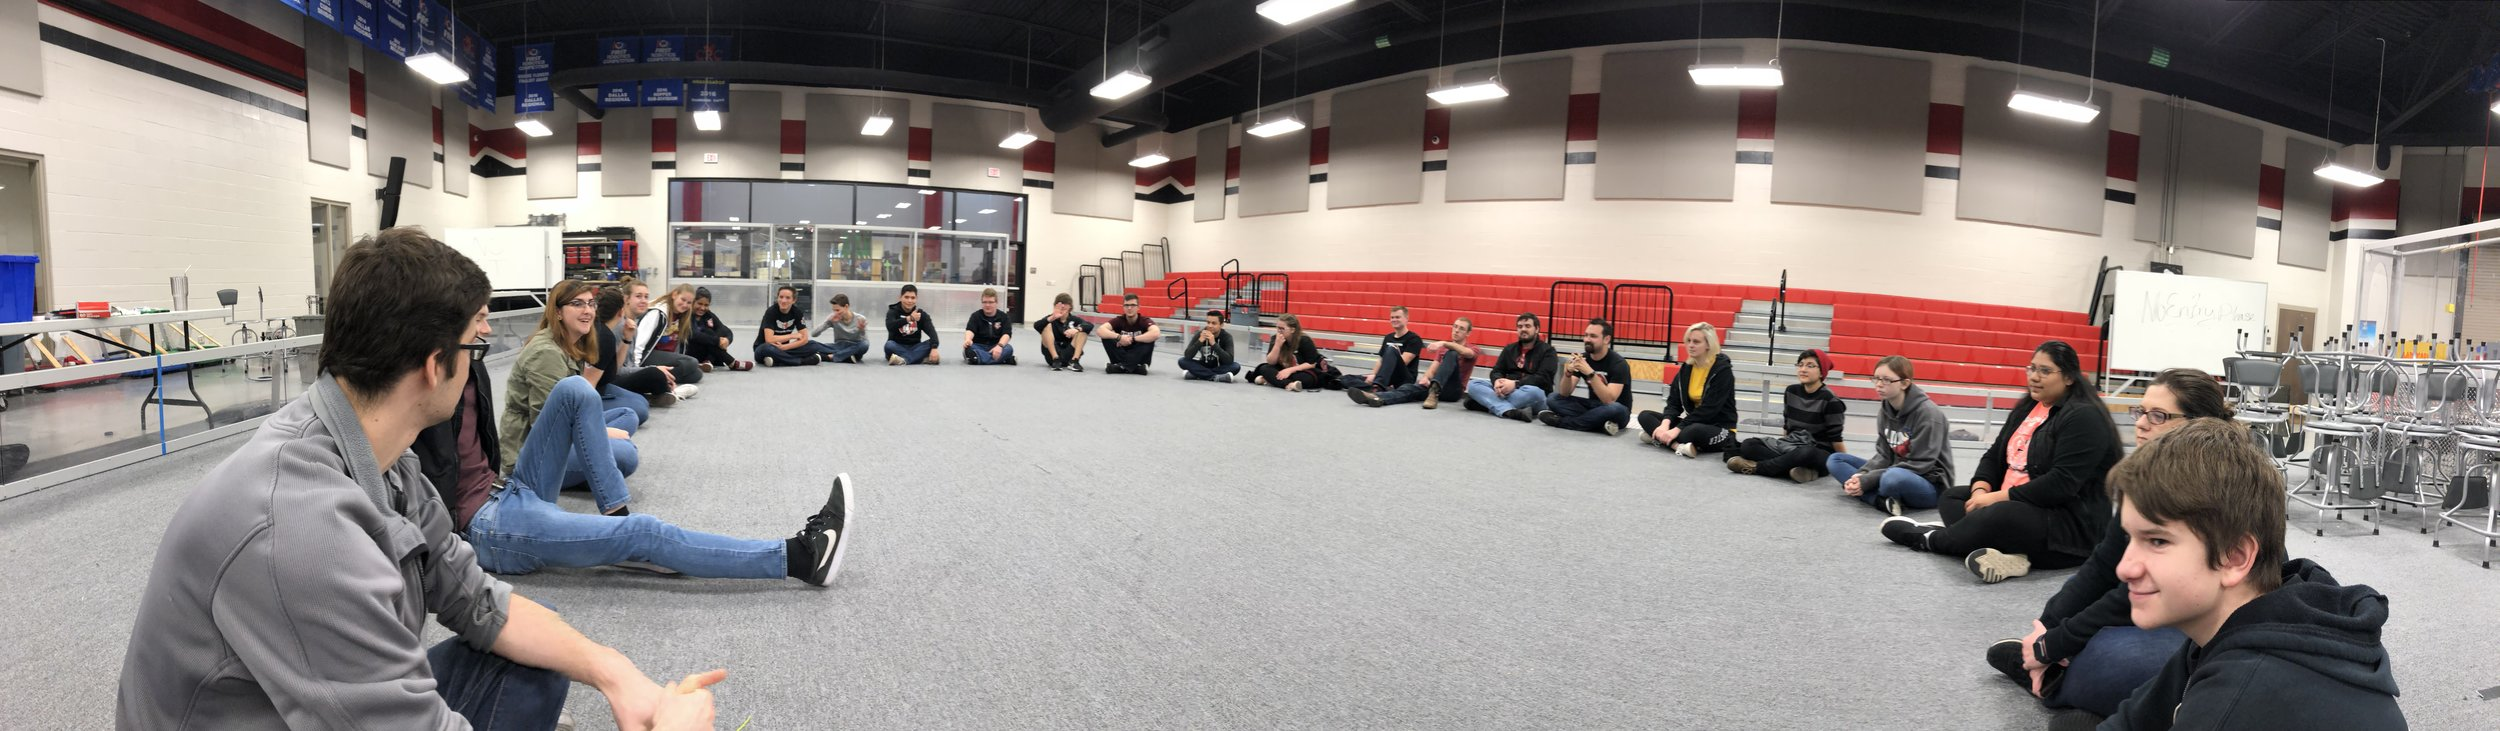 """This is called Robowrangler Huddle. We """"Huddle Up!"""" for full team discussions all the time and typically start each meeting with a Huddle. I vocally judge the team on their ability to make a """"circle"""". This one was pretty good. 9/10, would huddle again."""